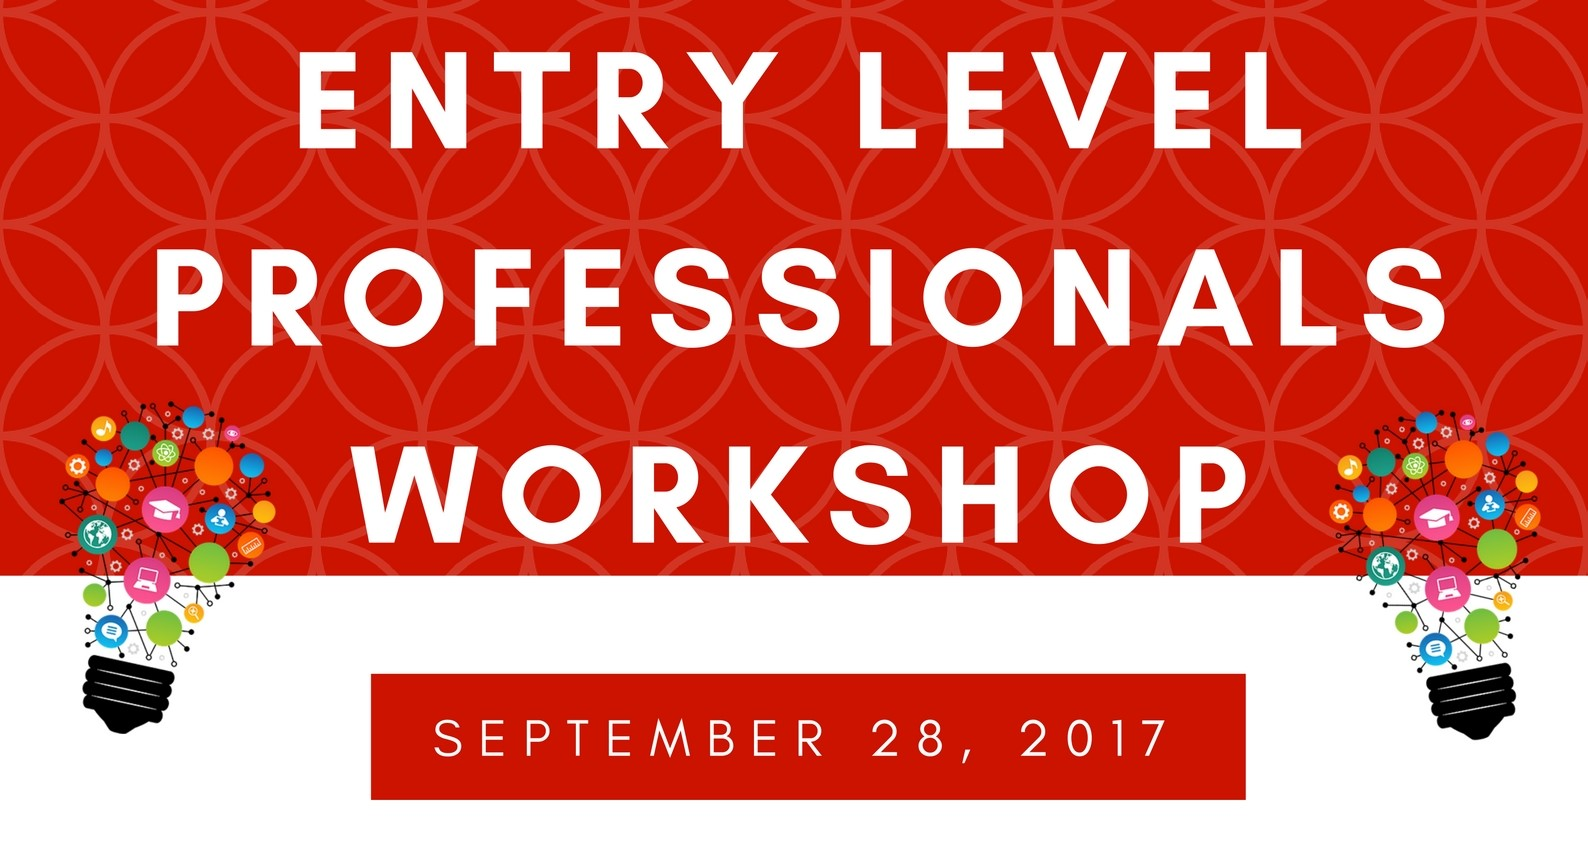 Entry Level Professionals Workshop